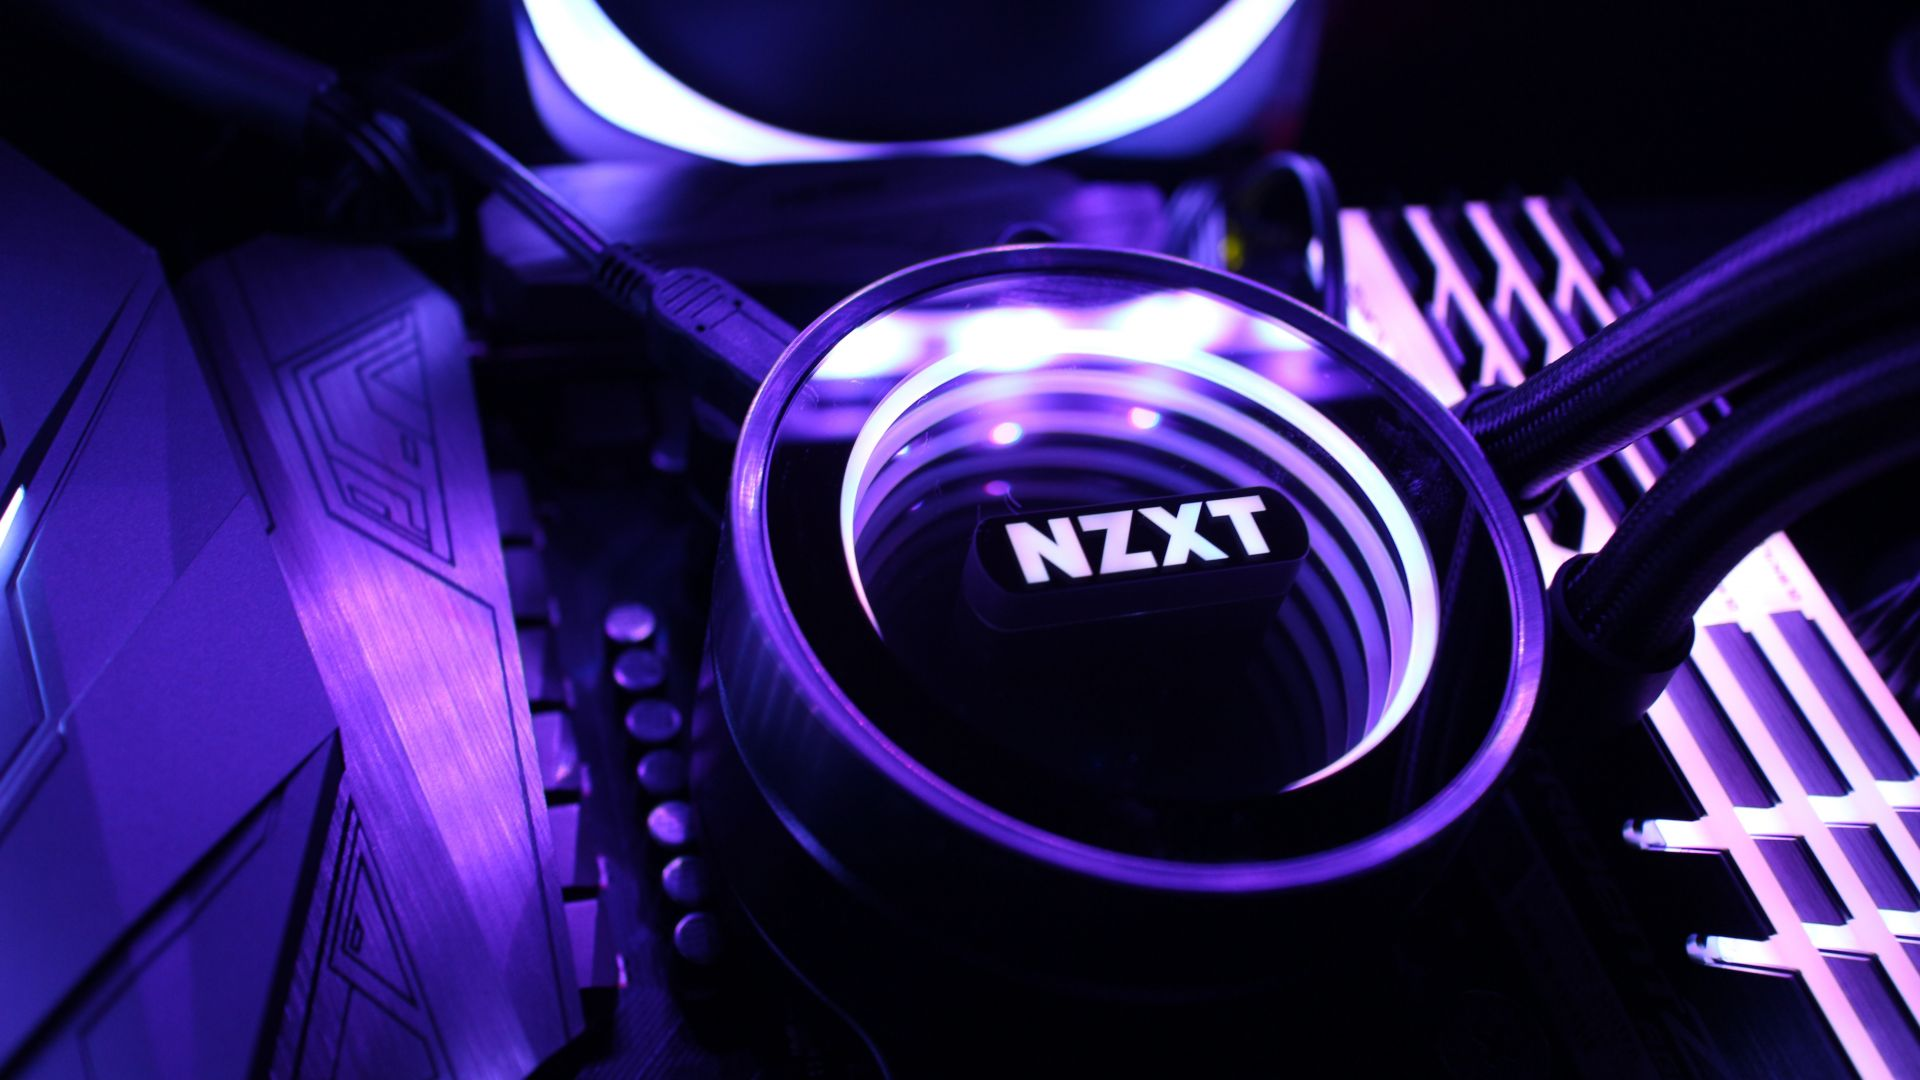 NZXT, purple, light, 5K (horizontal)